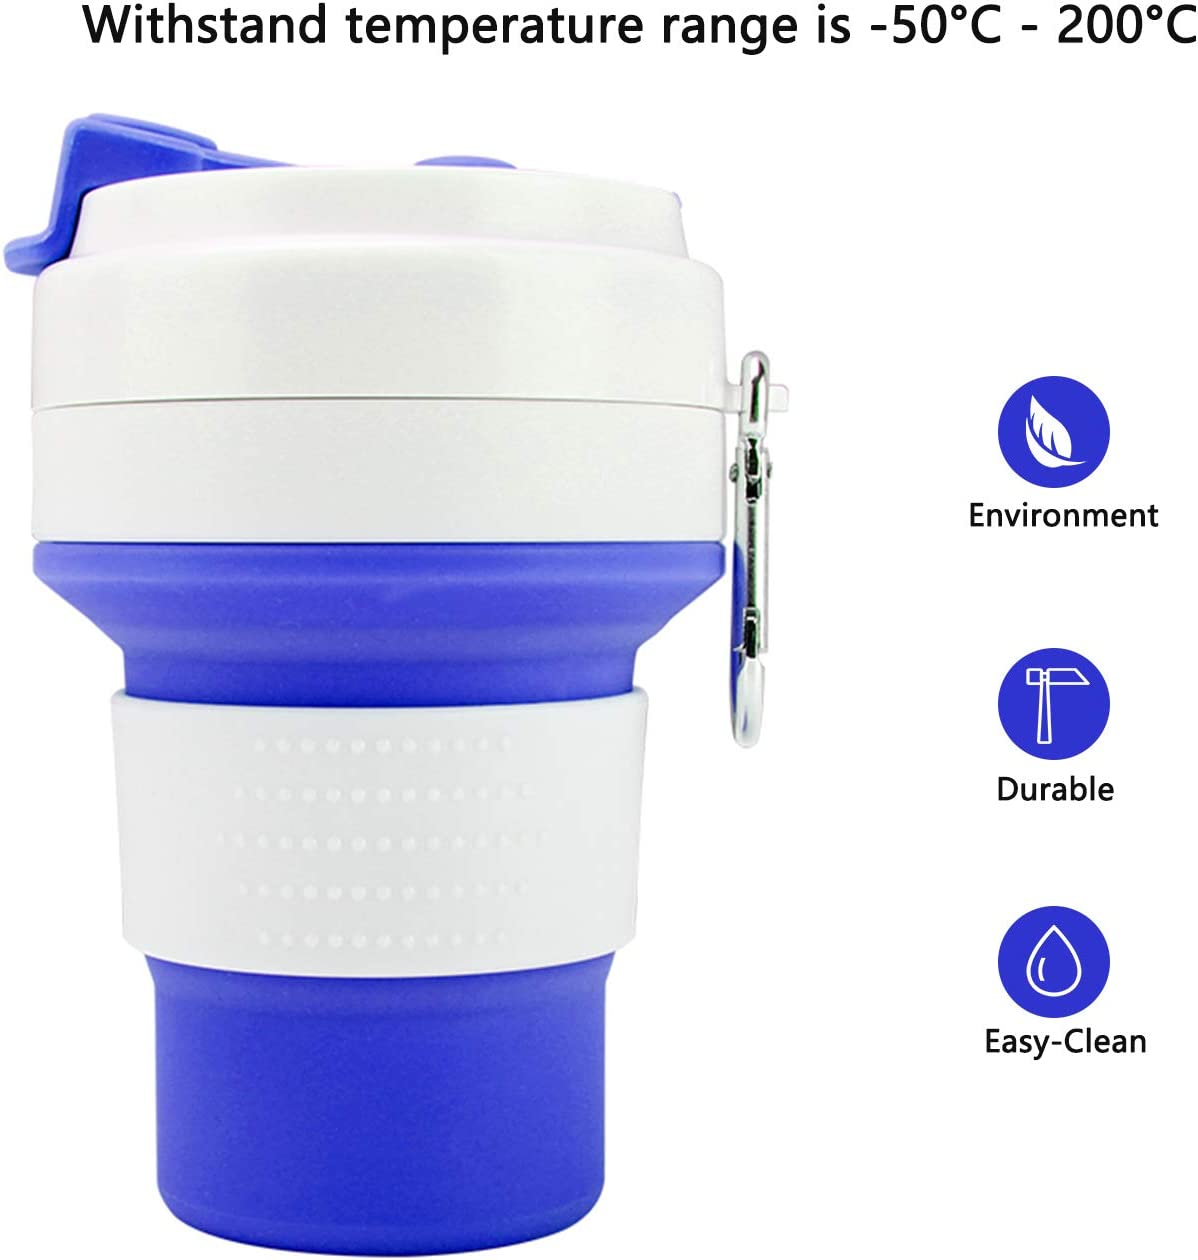 Original Innovative Telescopic Portable Water Cup,Collapsible Water Bottle,Silicone Collapsible Travel Cup for Outdoor Camping and Hiking,Travel Cup,Collapsible Cup,Camping Cup,Foldable,Easy to Carry